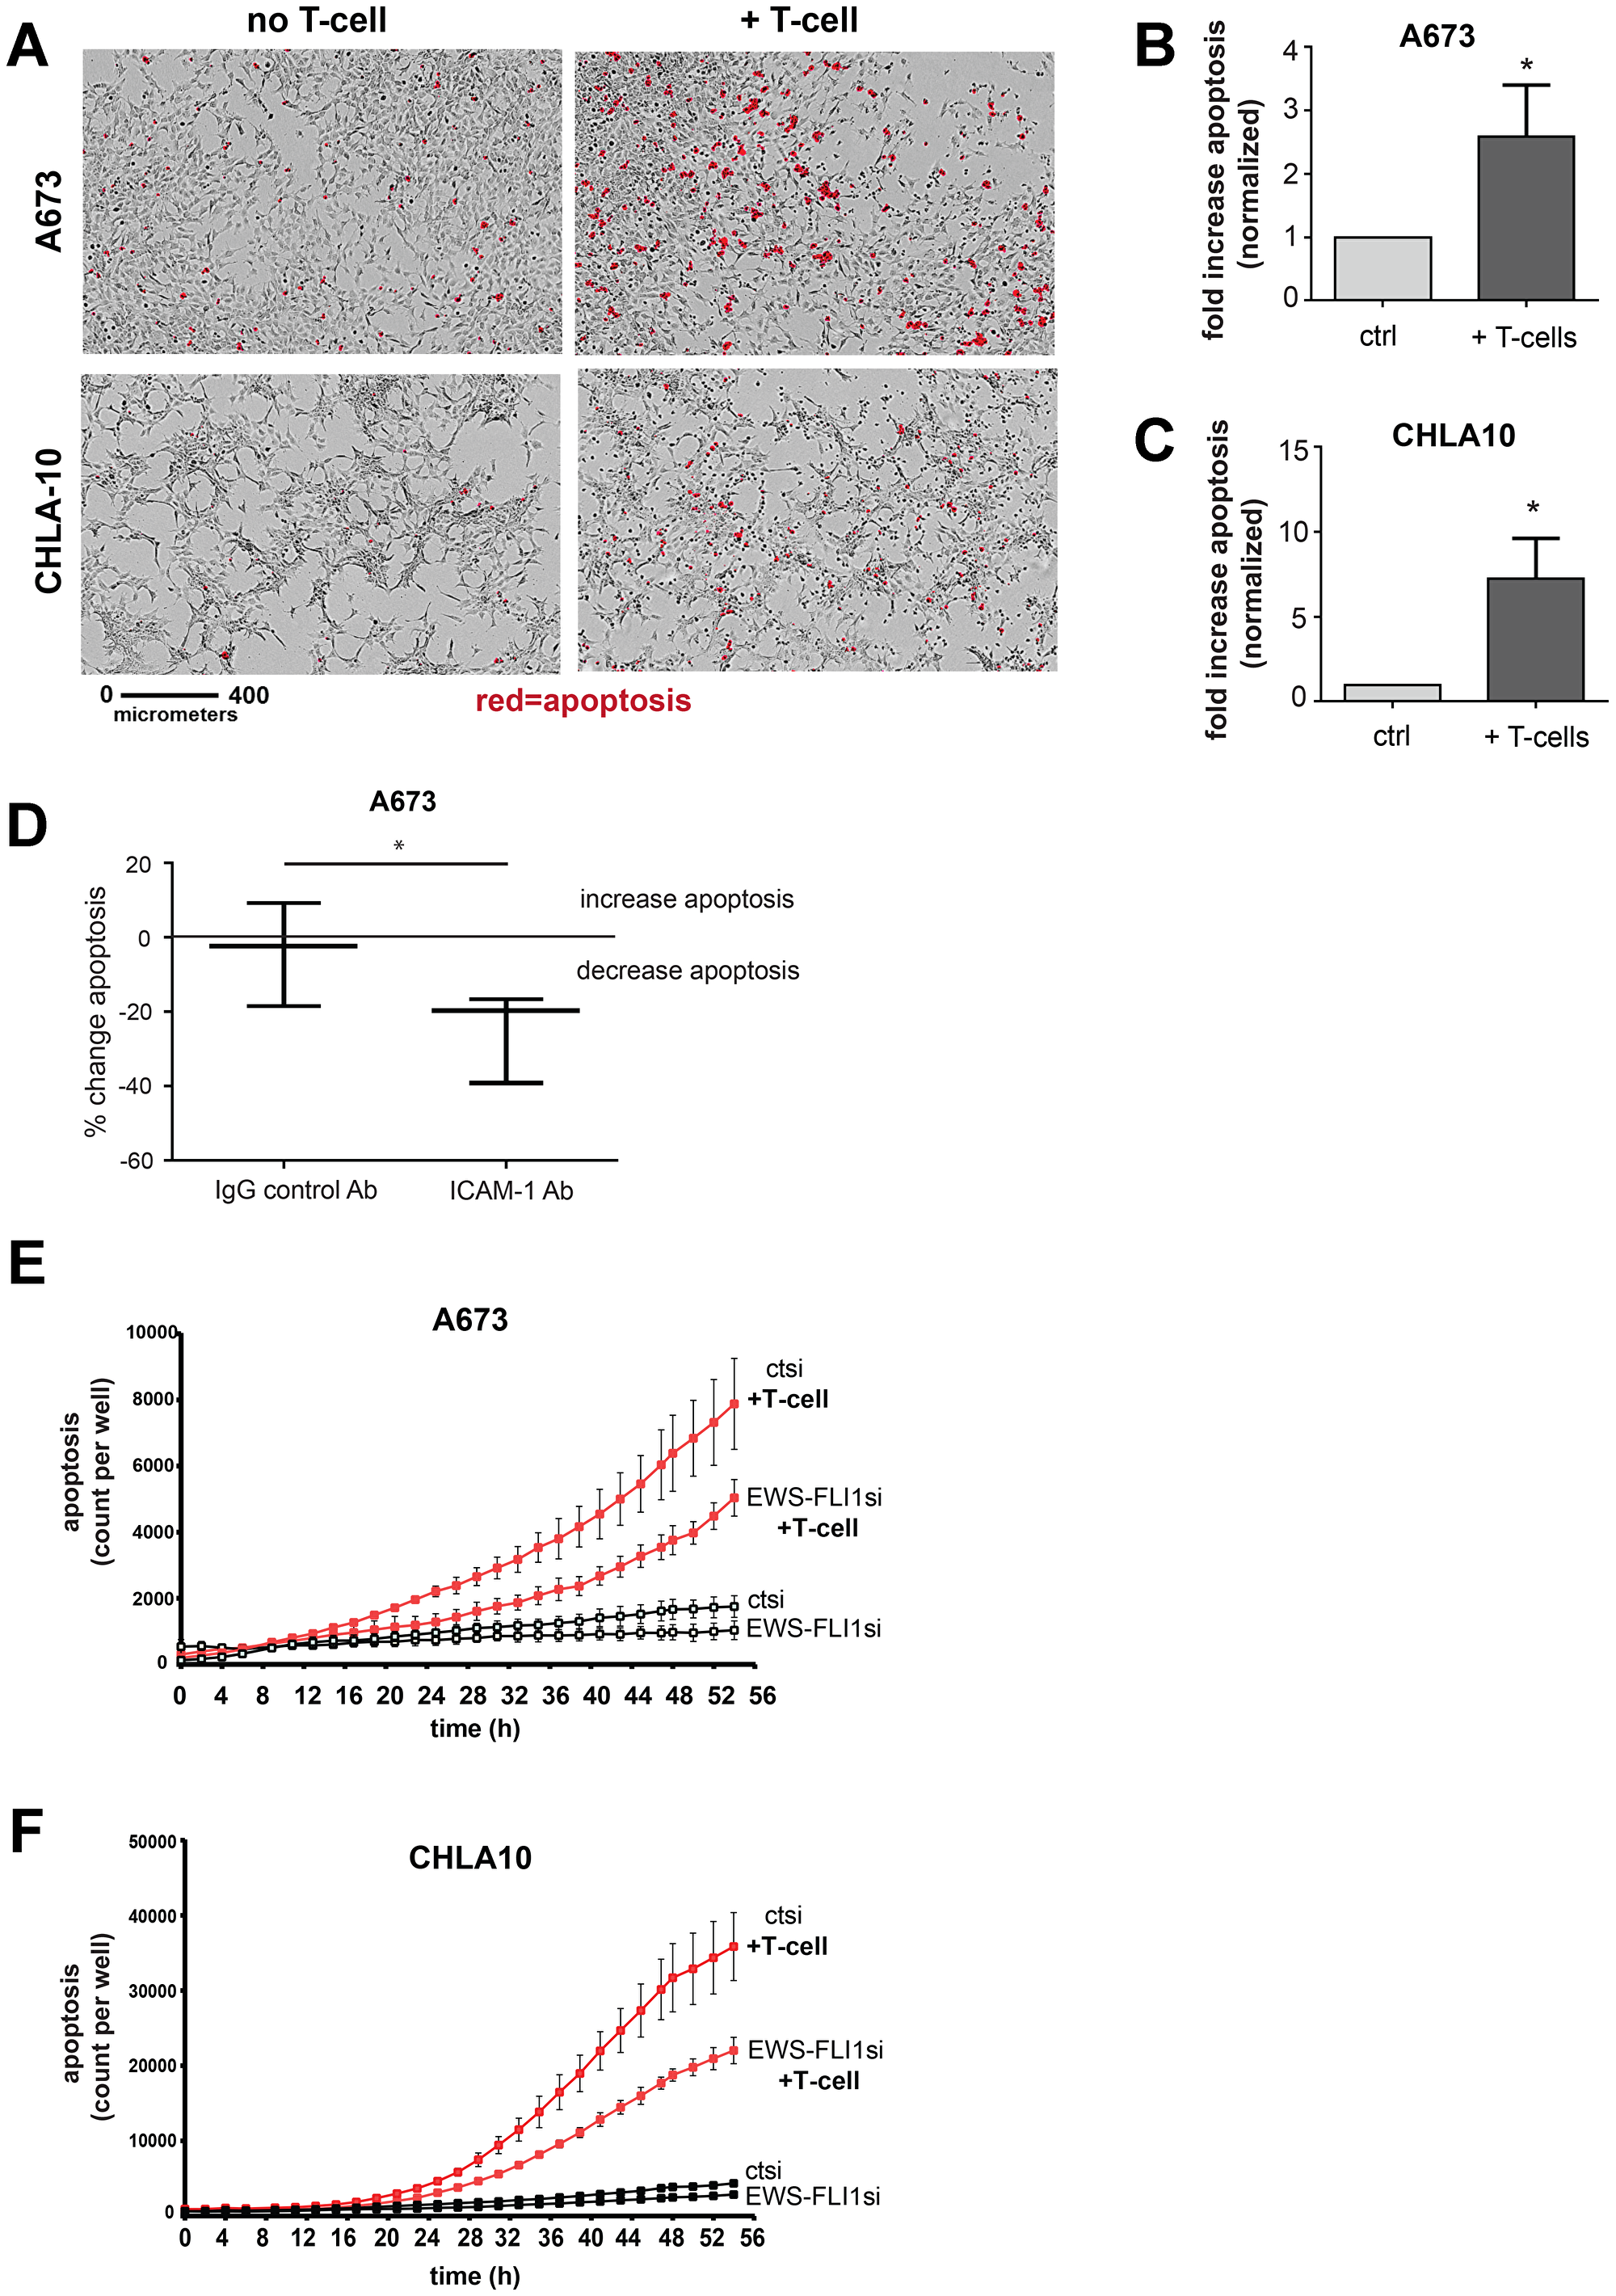 Ewing tumor cells with lower EWS-FLI1 level are more resistant to T-cell mediated apoptosis.